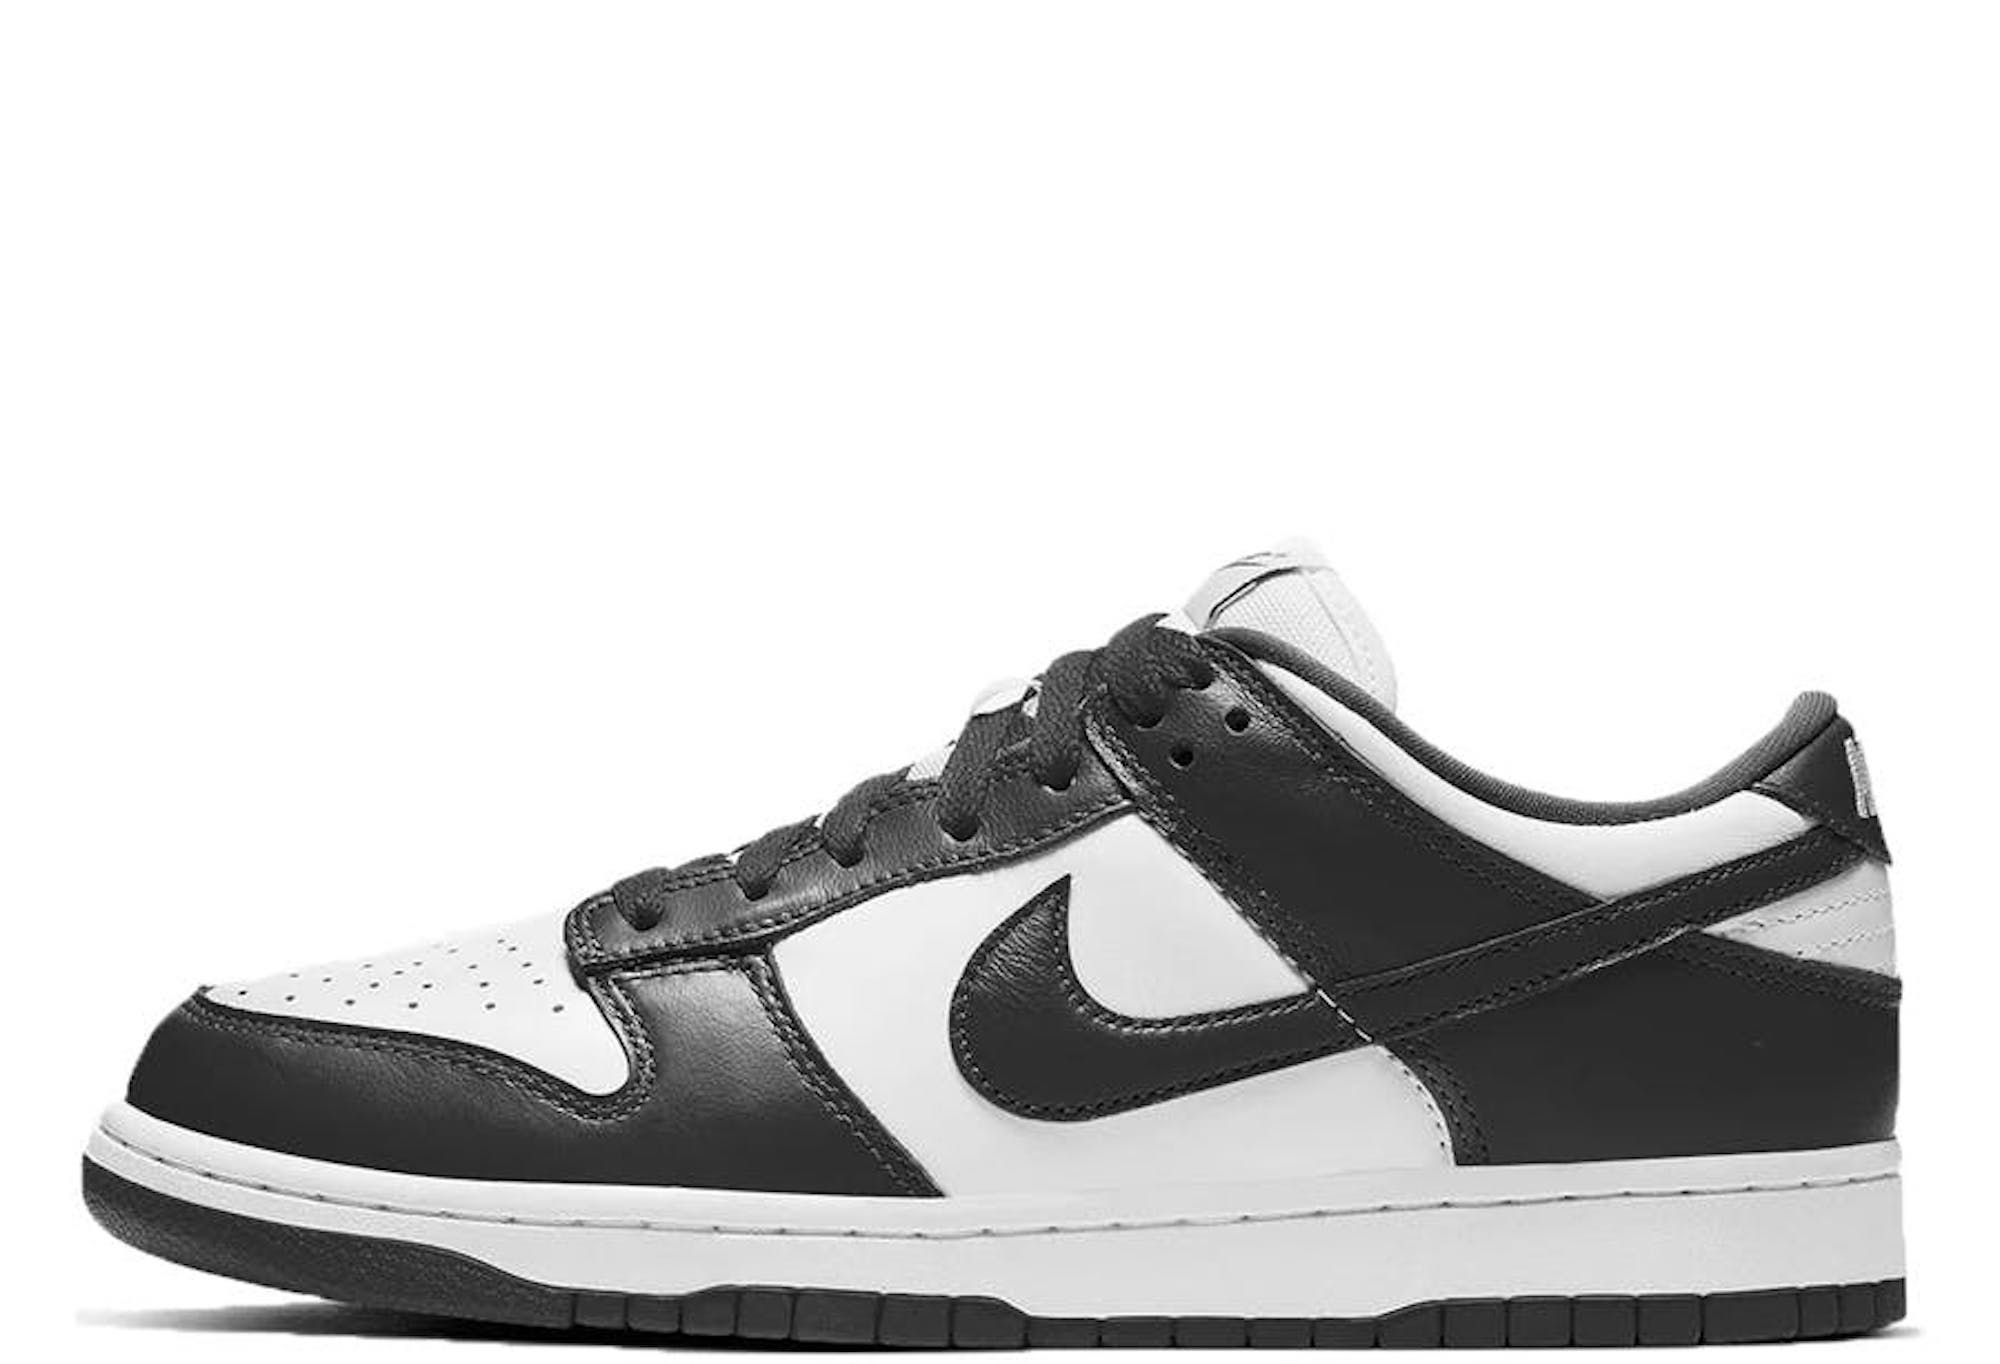 Klekt Nike Dunk Low Retro Black White